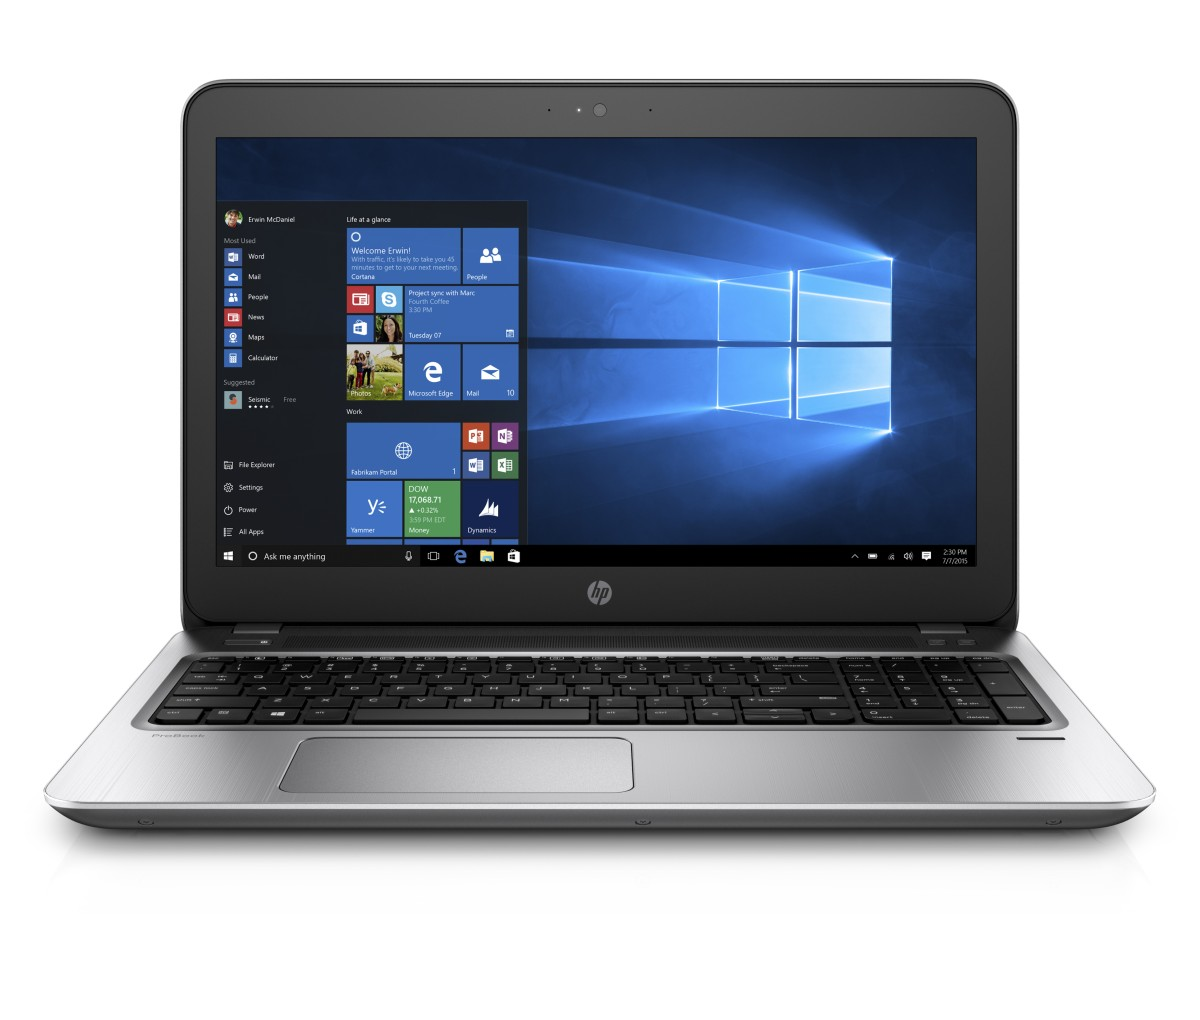 HP ProBook 450 G4 i3-7100U /4GB/500GB/15.6 FHD/ Office 2016 H&B / W10 Pro